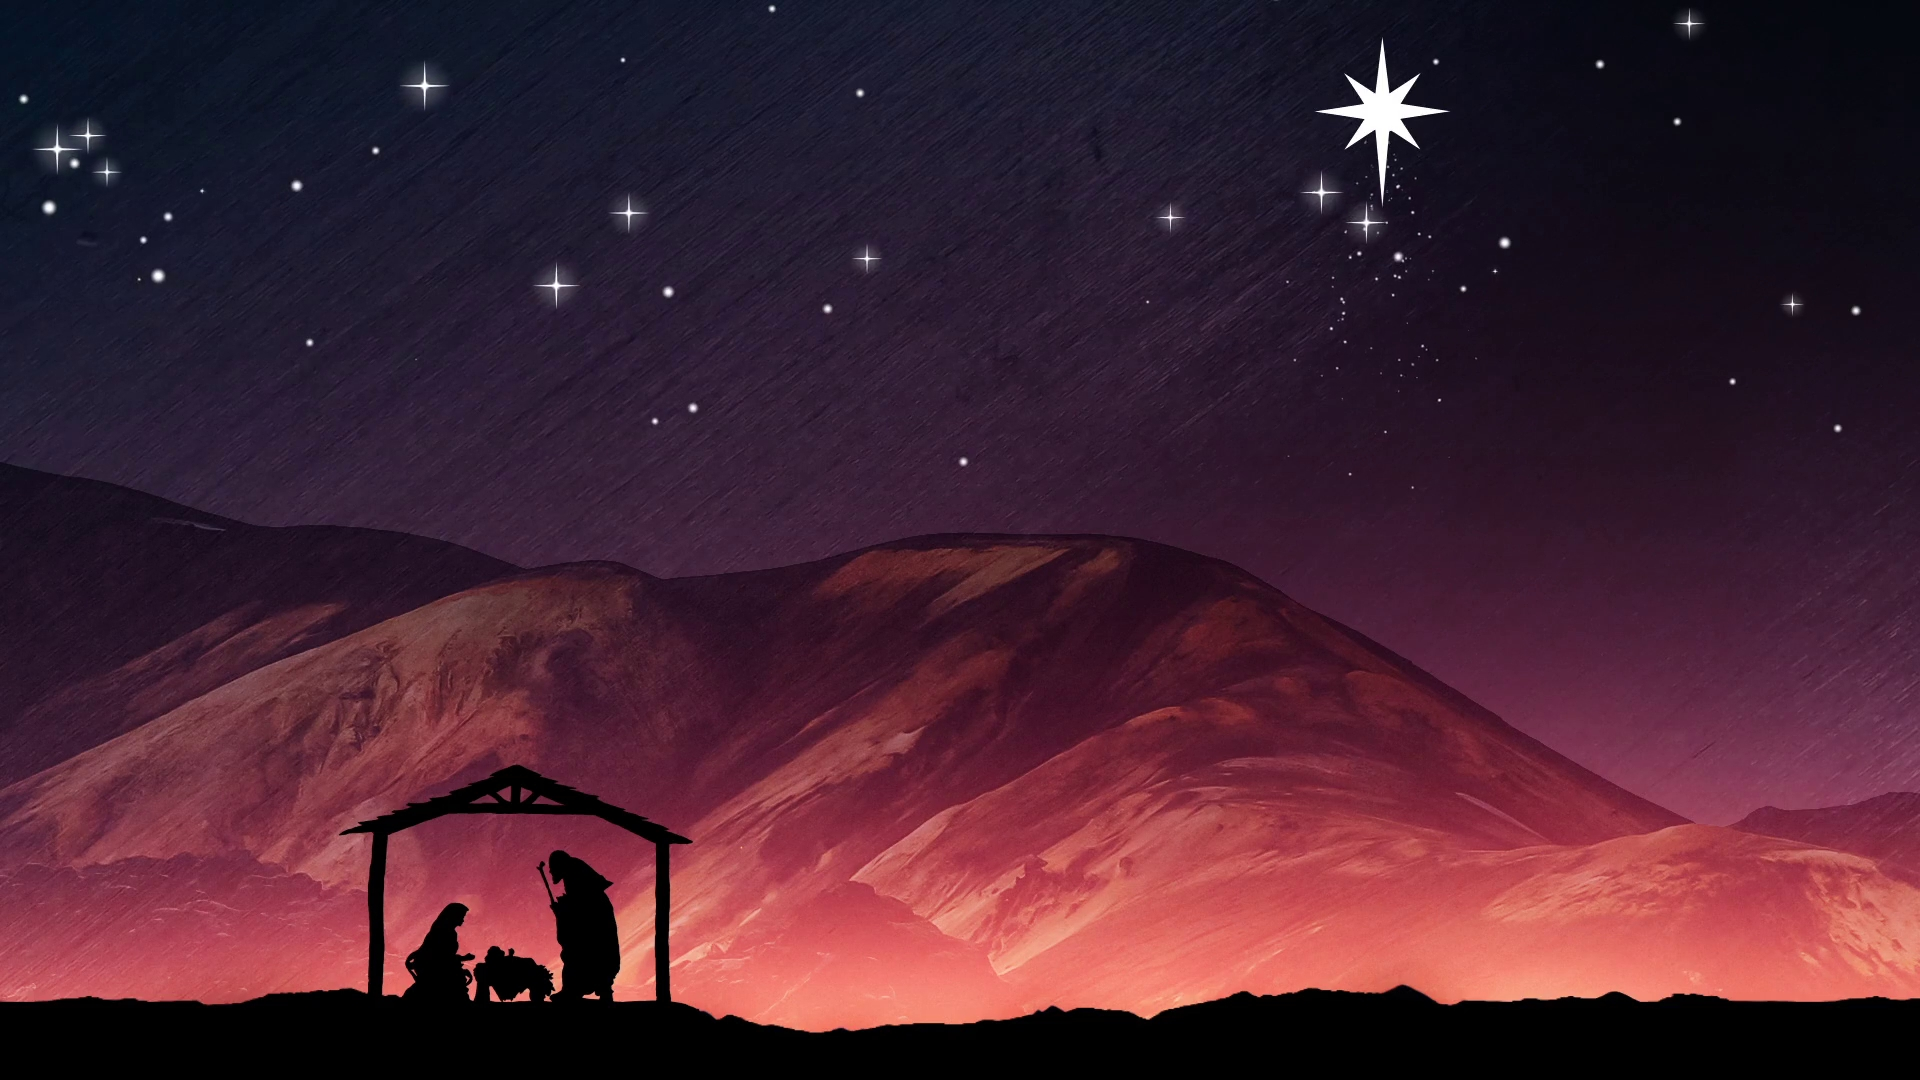 10 Top Christmas Nativity Background Images FULL HD 1080p For PC Background